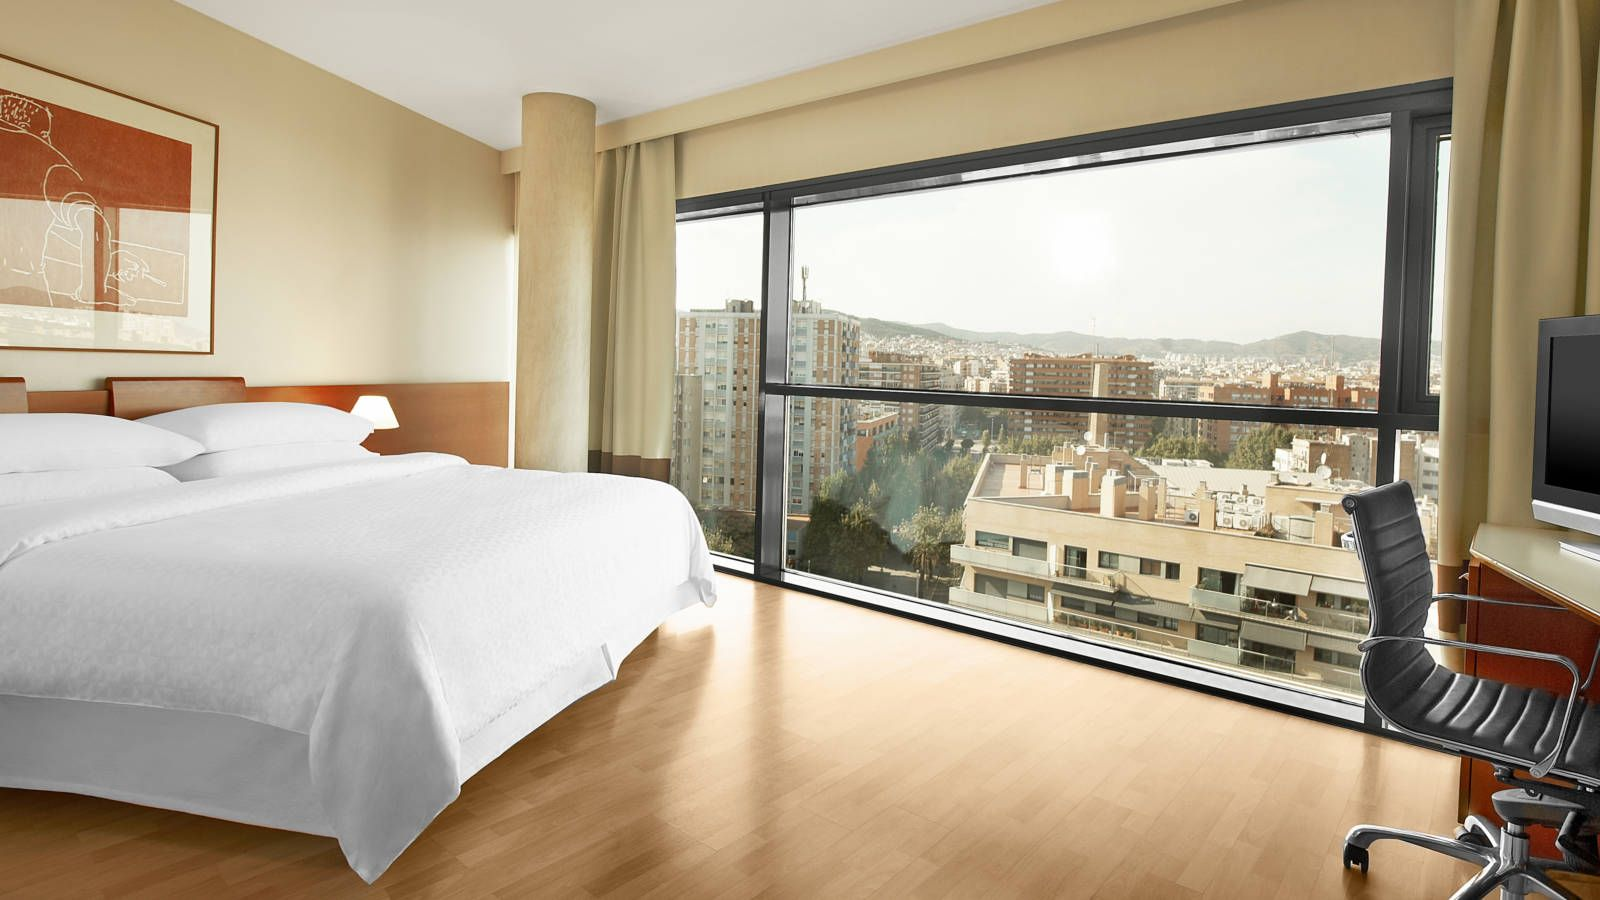 More information about the hotel with view on Sagrada Familia Four Points by Sheraton Barcelona Diagonal